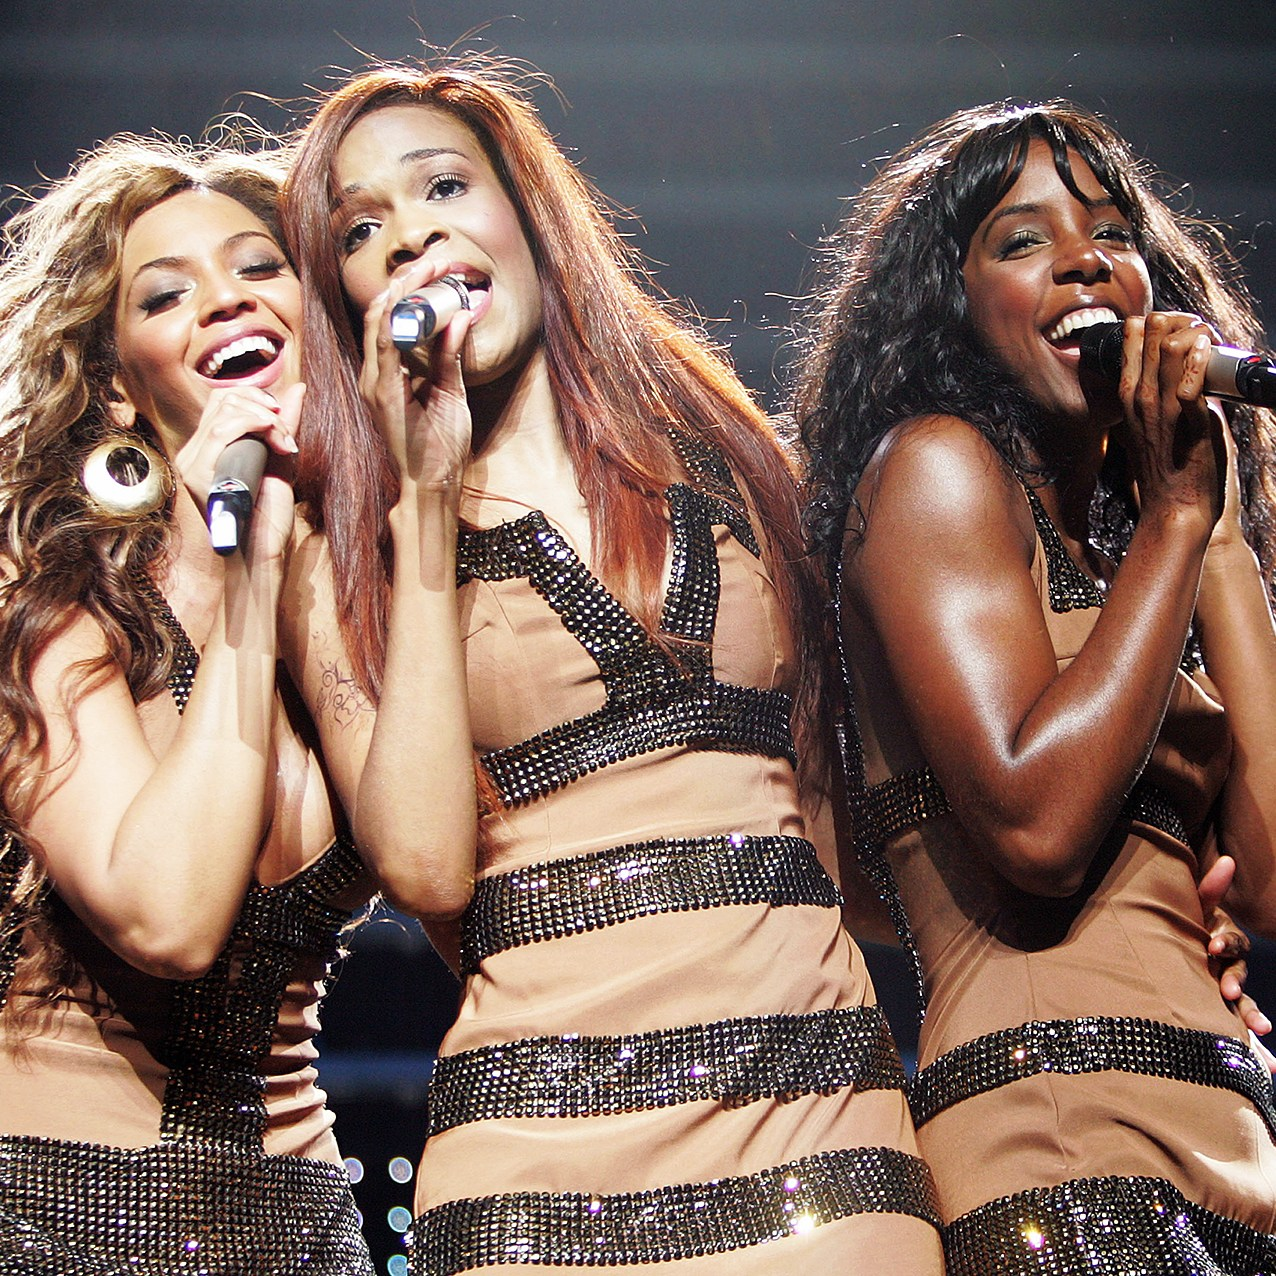 Michelle Williams Destiny's Child suicidal